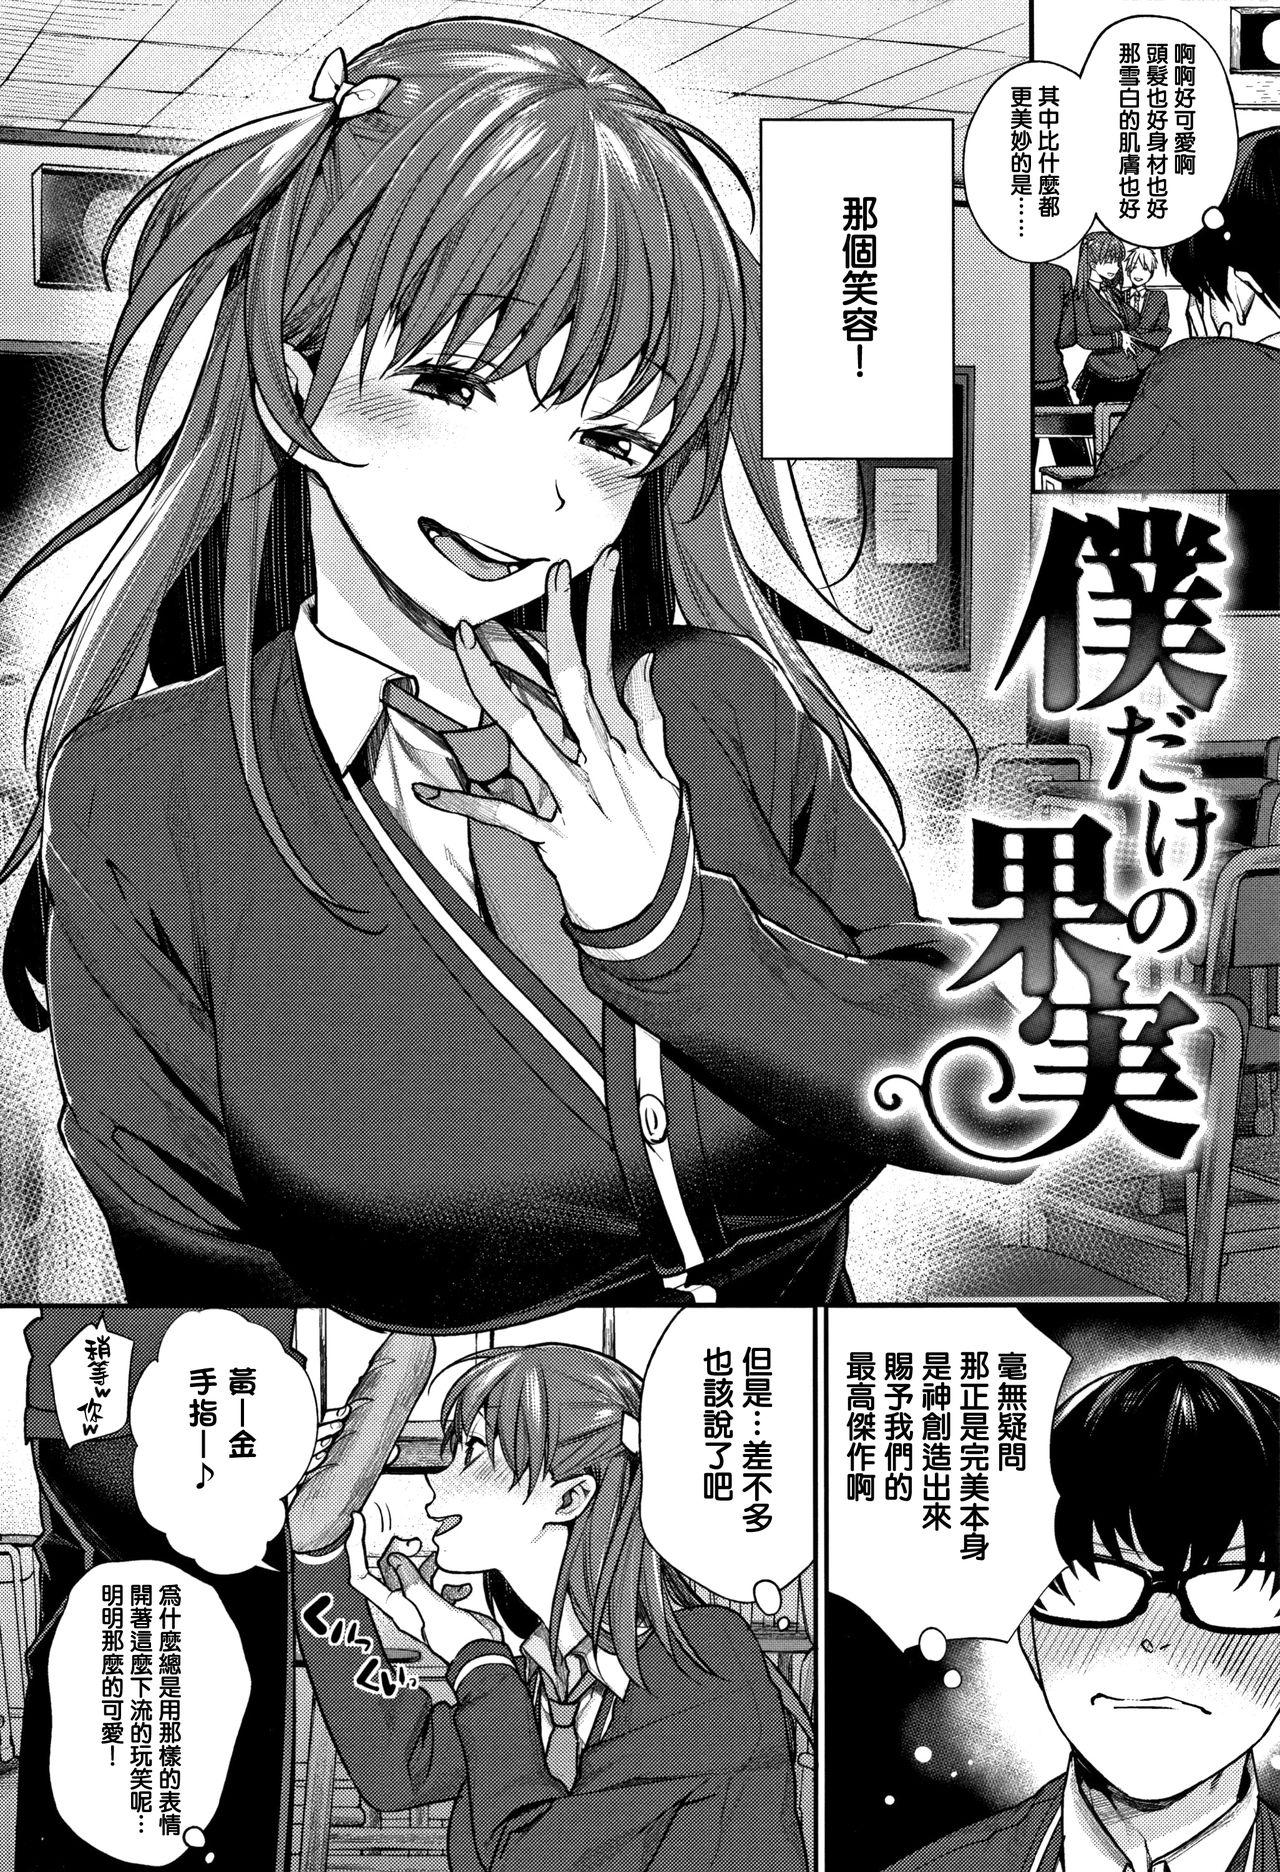 [MGMEE] Bokura no Etude - Our H Chu Do Ch.1-7 [Chinese] [無邪気漢化組] 5